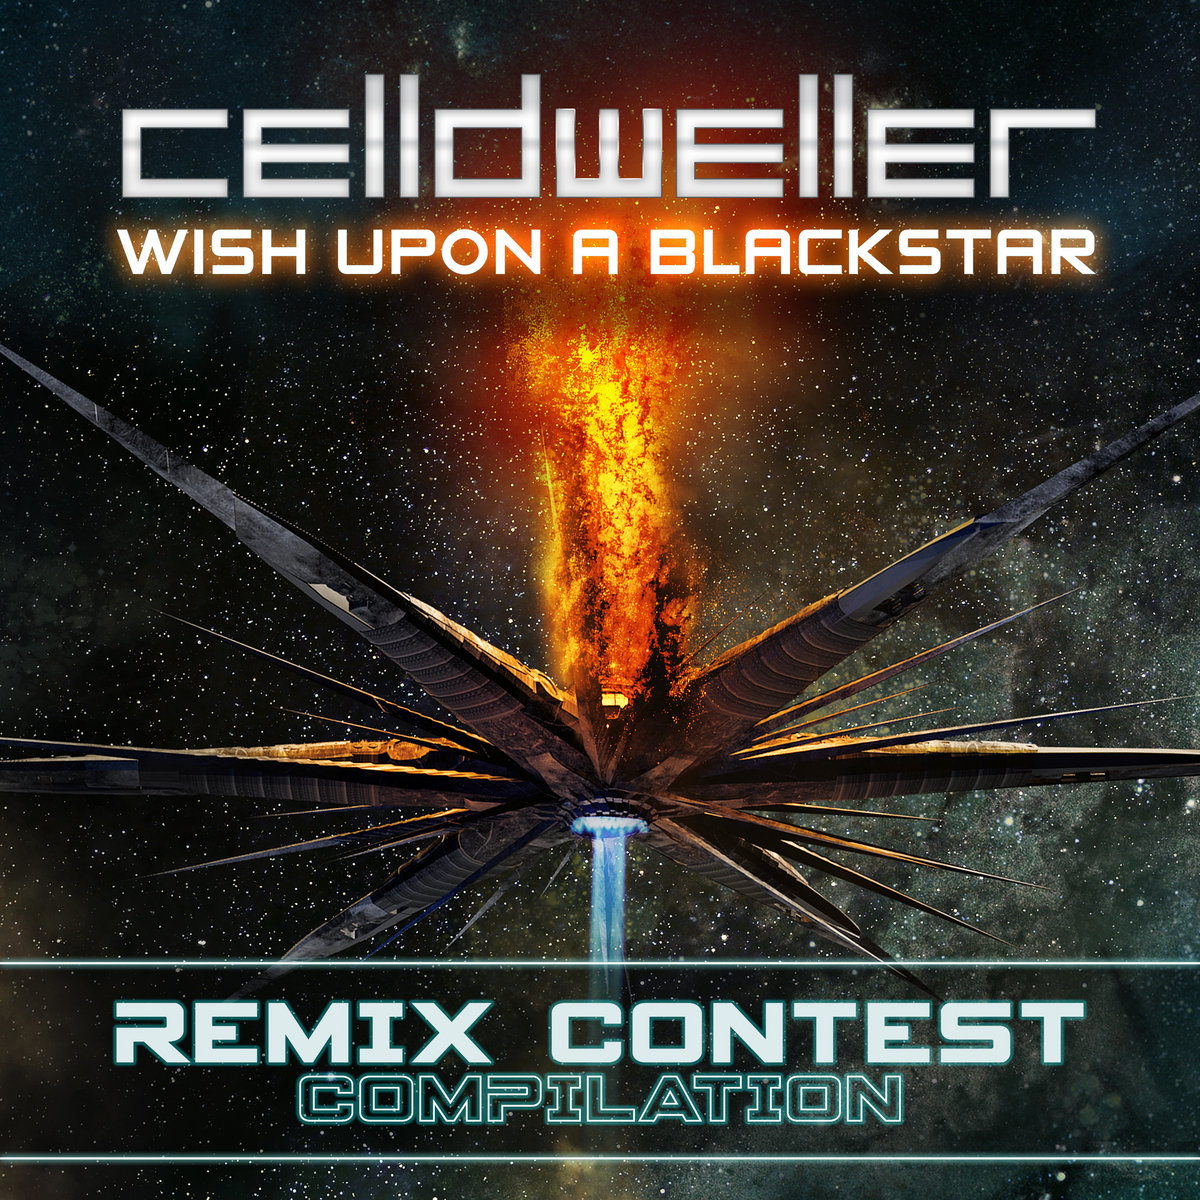 Celldweller wish upon a blackstar rar download wolfmediazone.